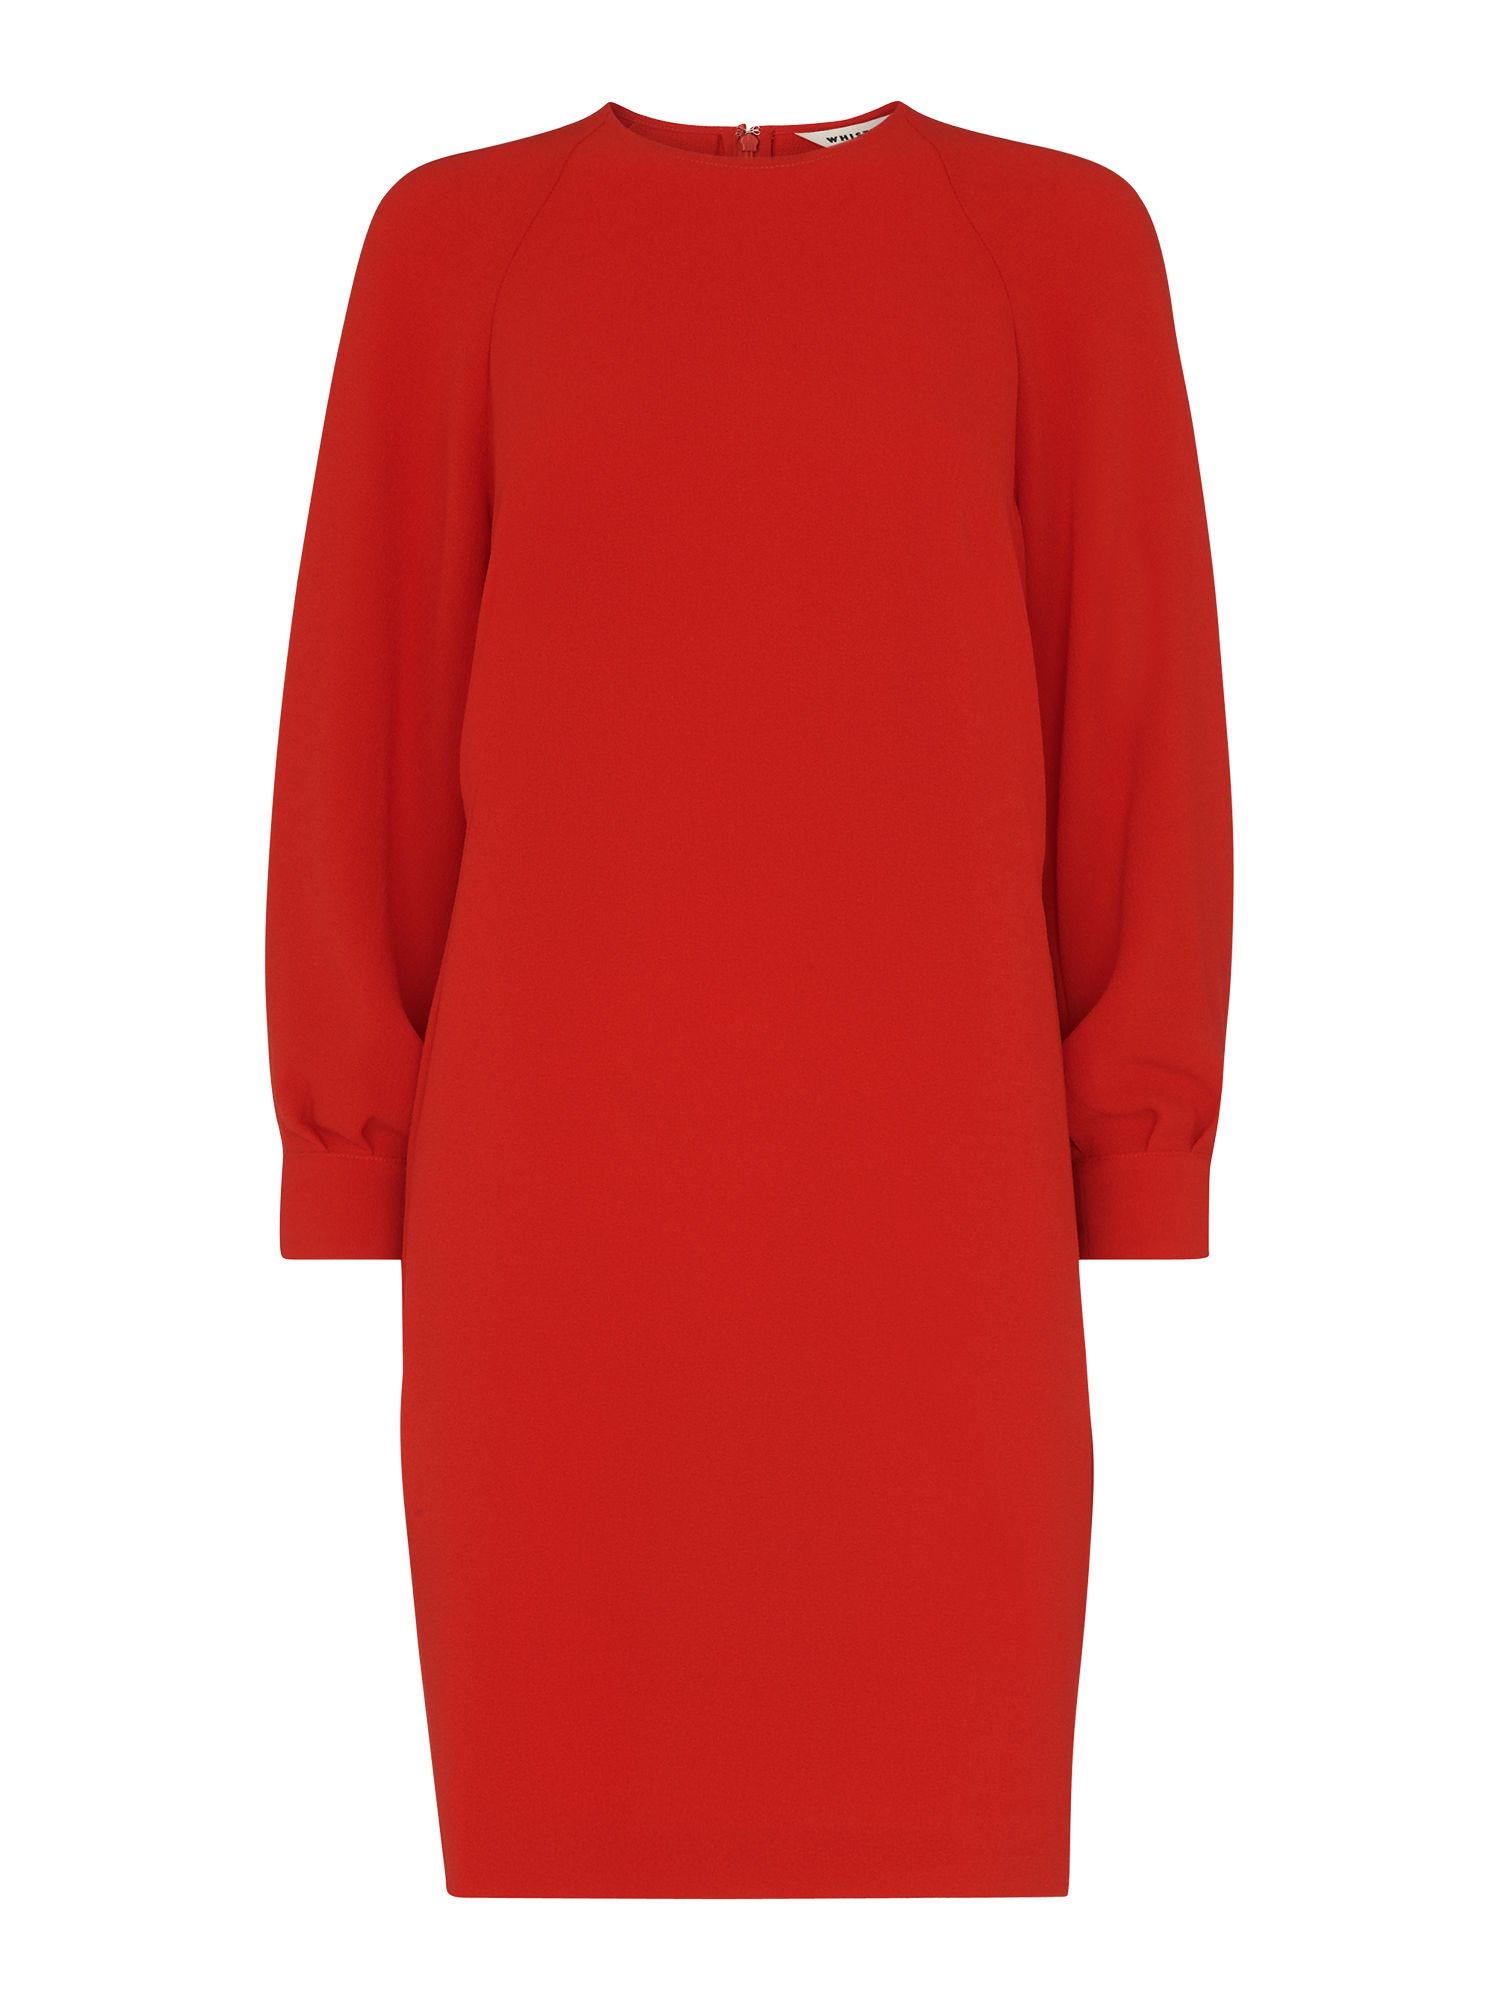 Whistles Tihara Textured Red Dress  85c659d58